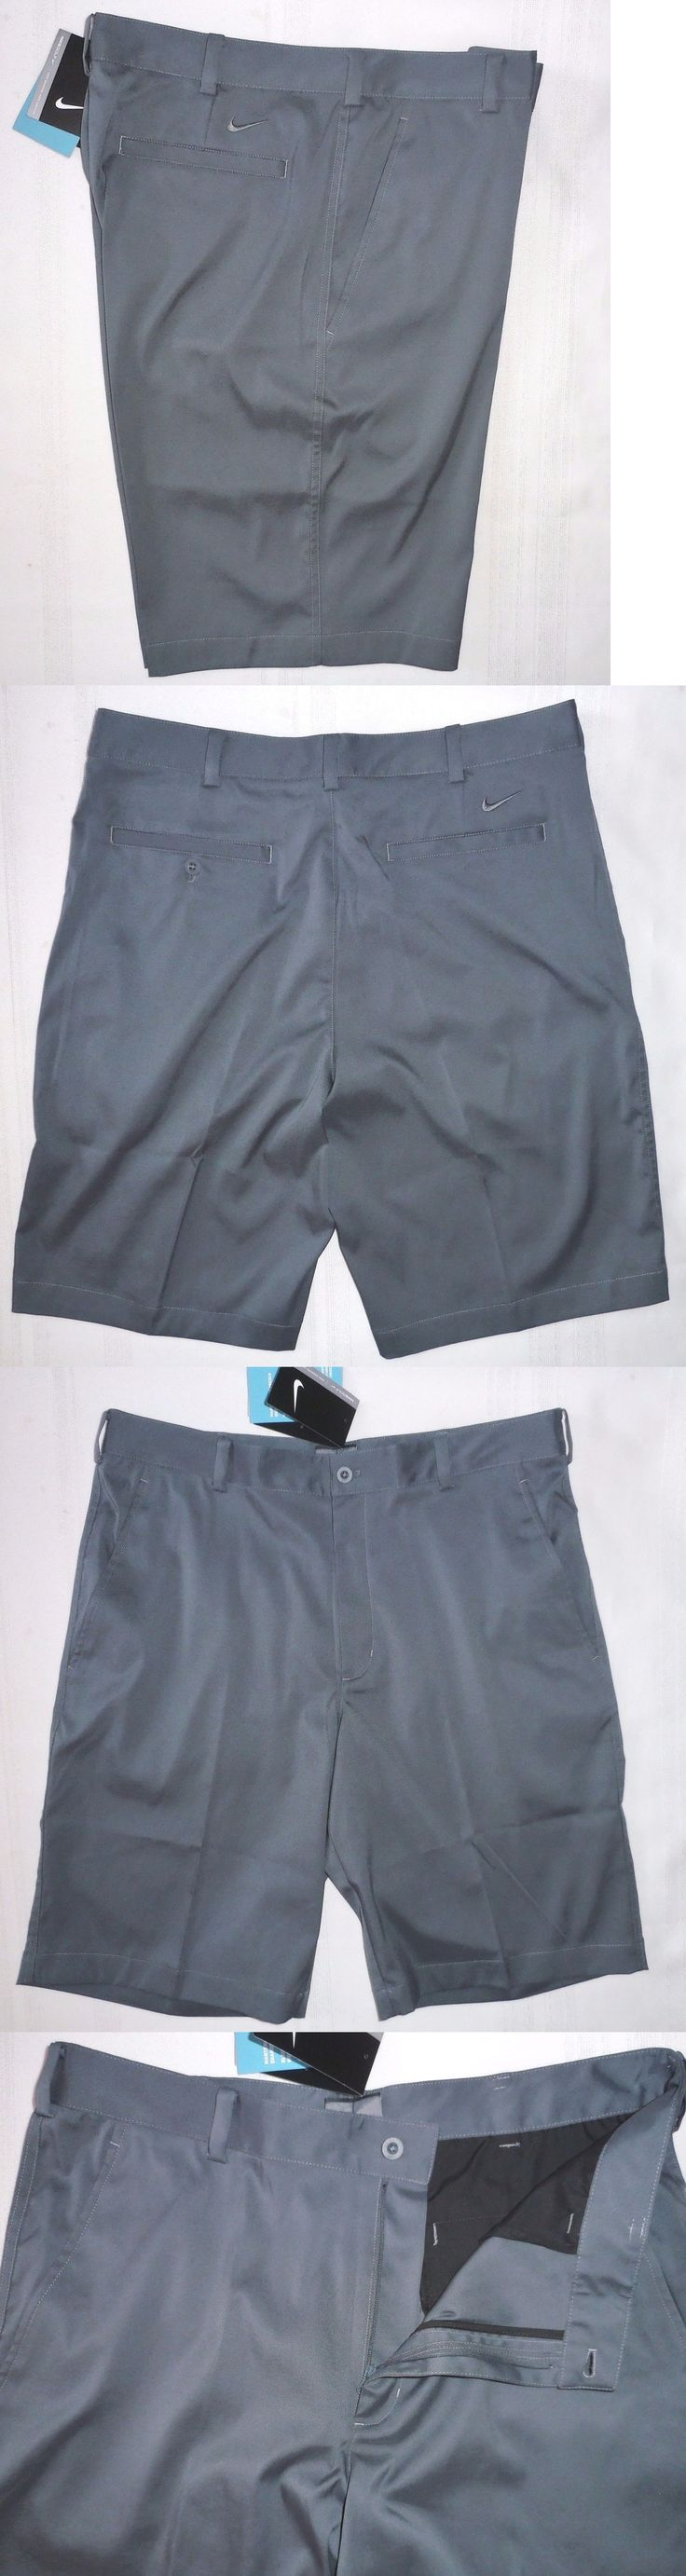 Shorts 15689: Nike Golf Tech Shorts 551808 021 Mens Flat Front Size 30 34 32 36 38 Gray -> BUY IT NOW ONLY: $34.99 on eBay!